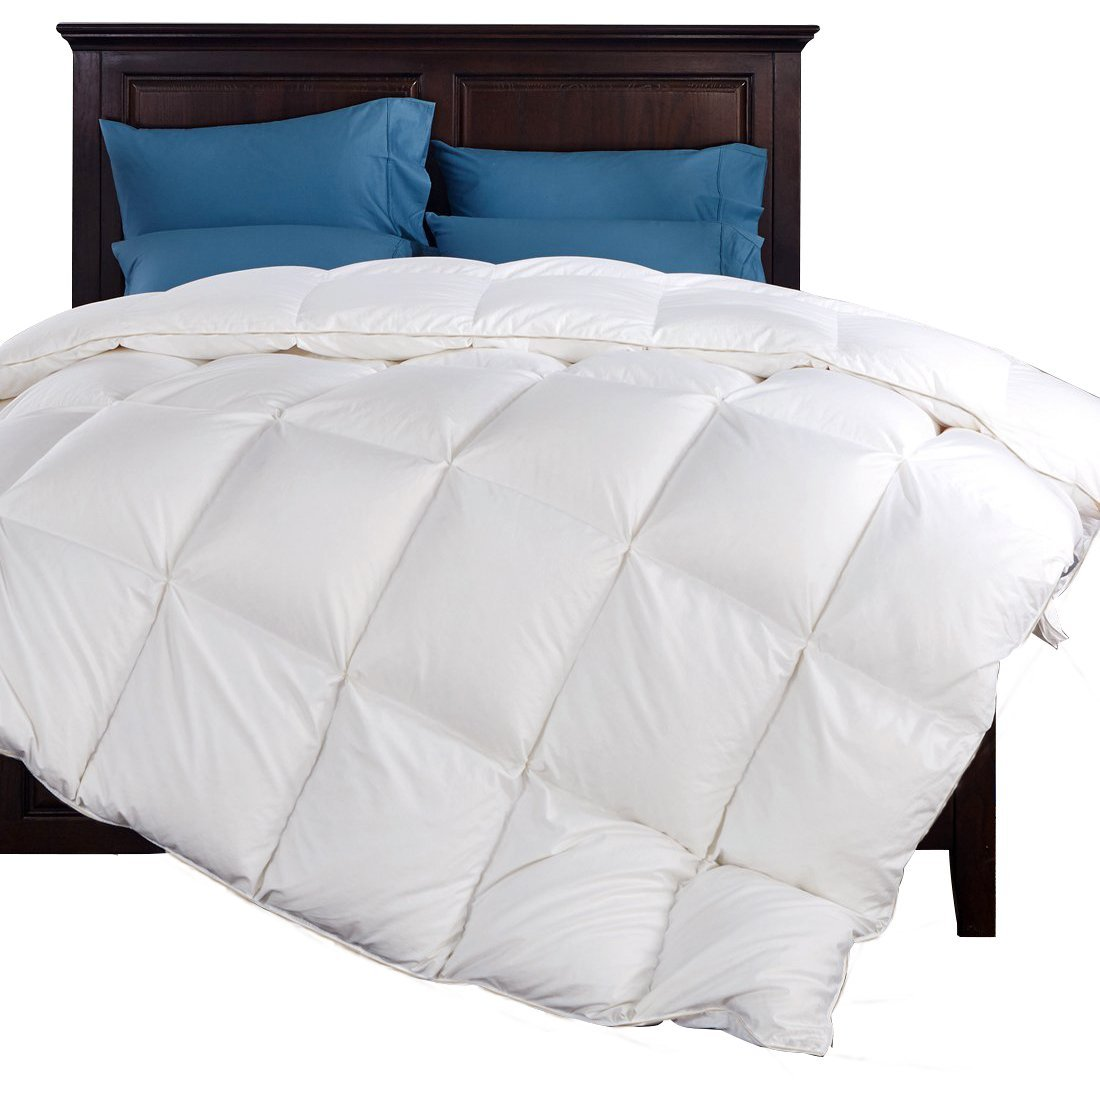 sale twin on cheap info comforter queen bed museosdemolina xl down sets girl walmart king